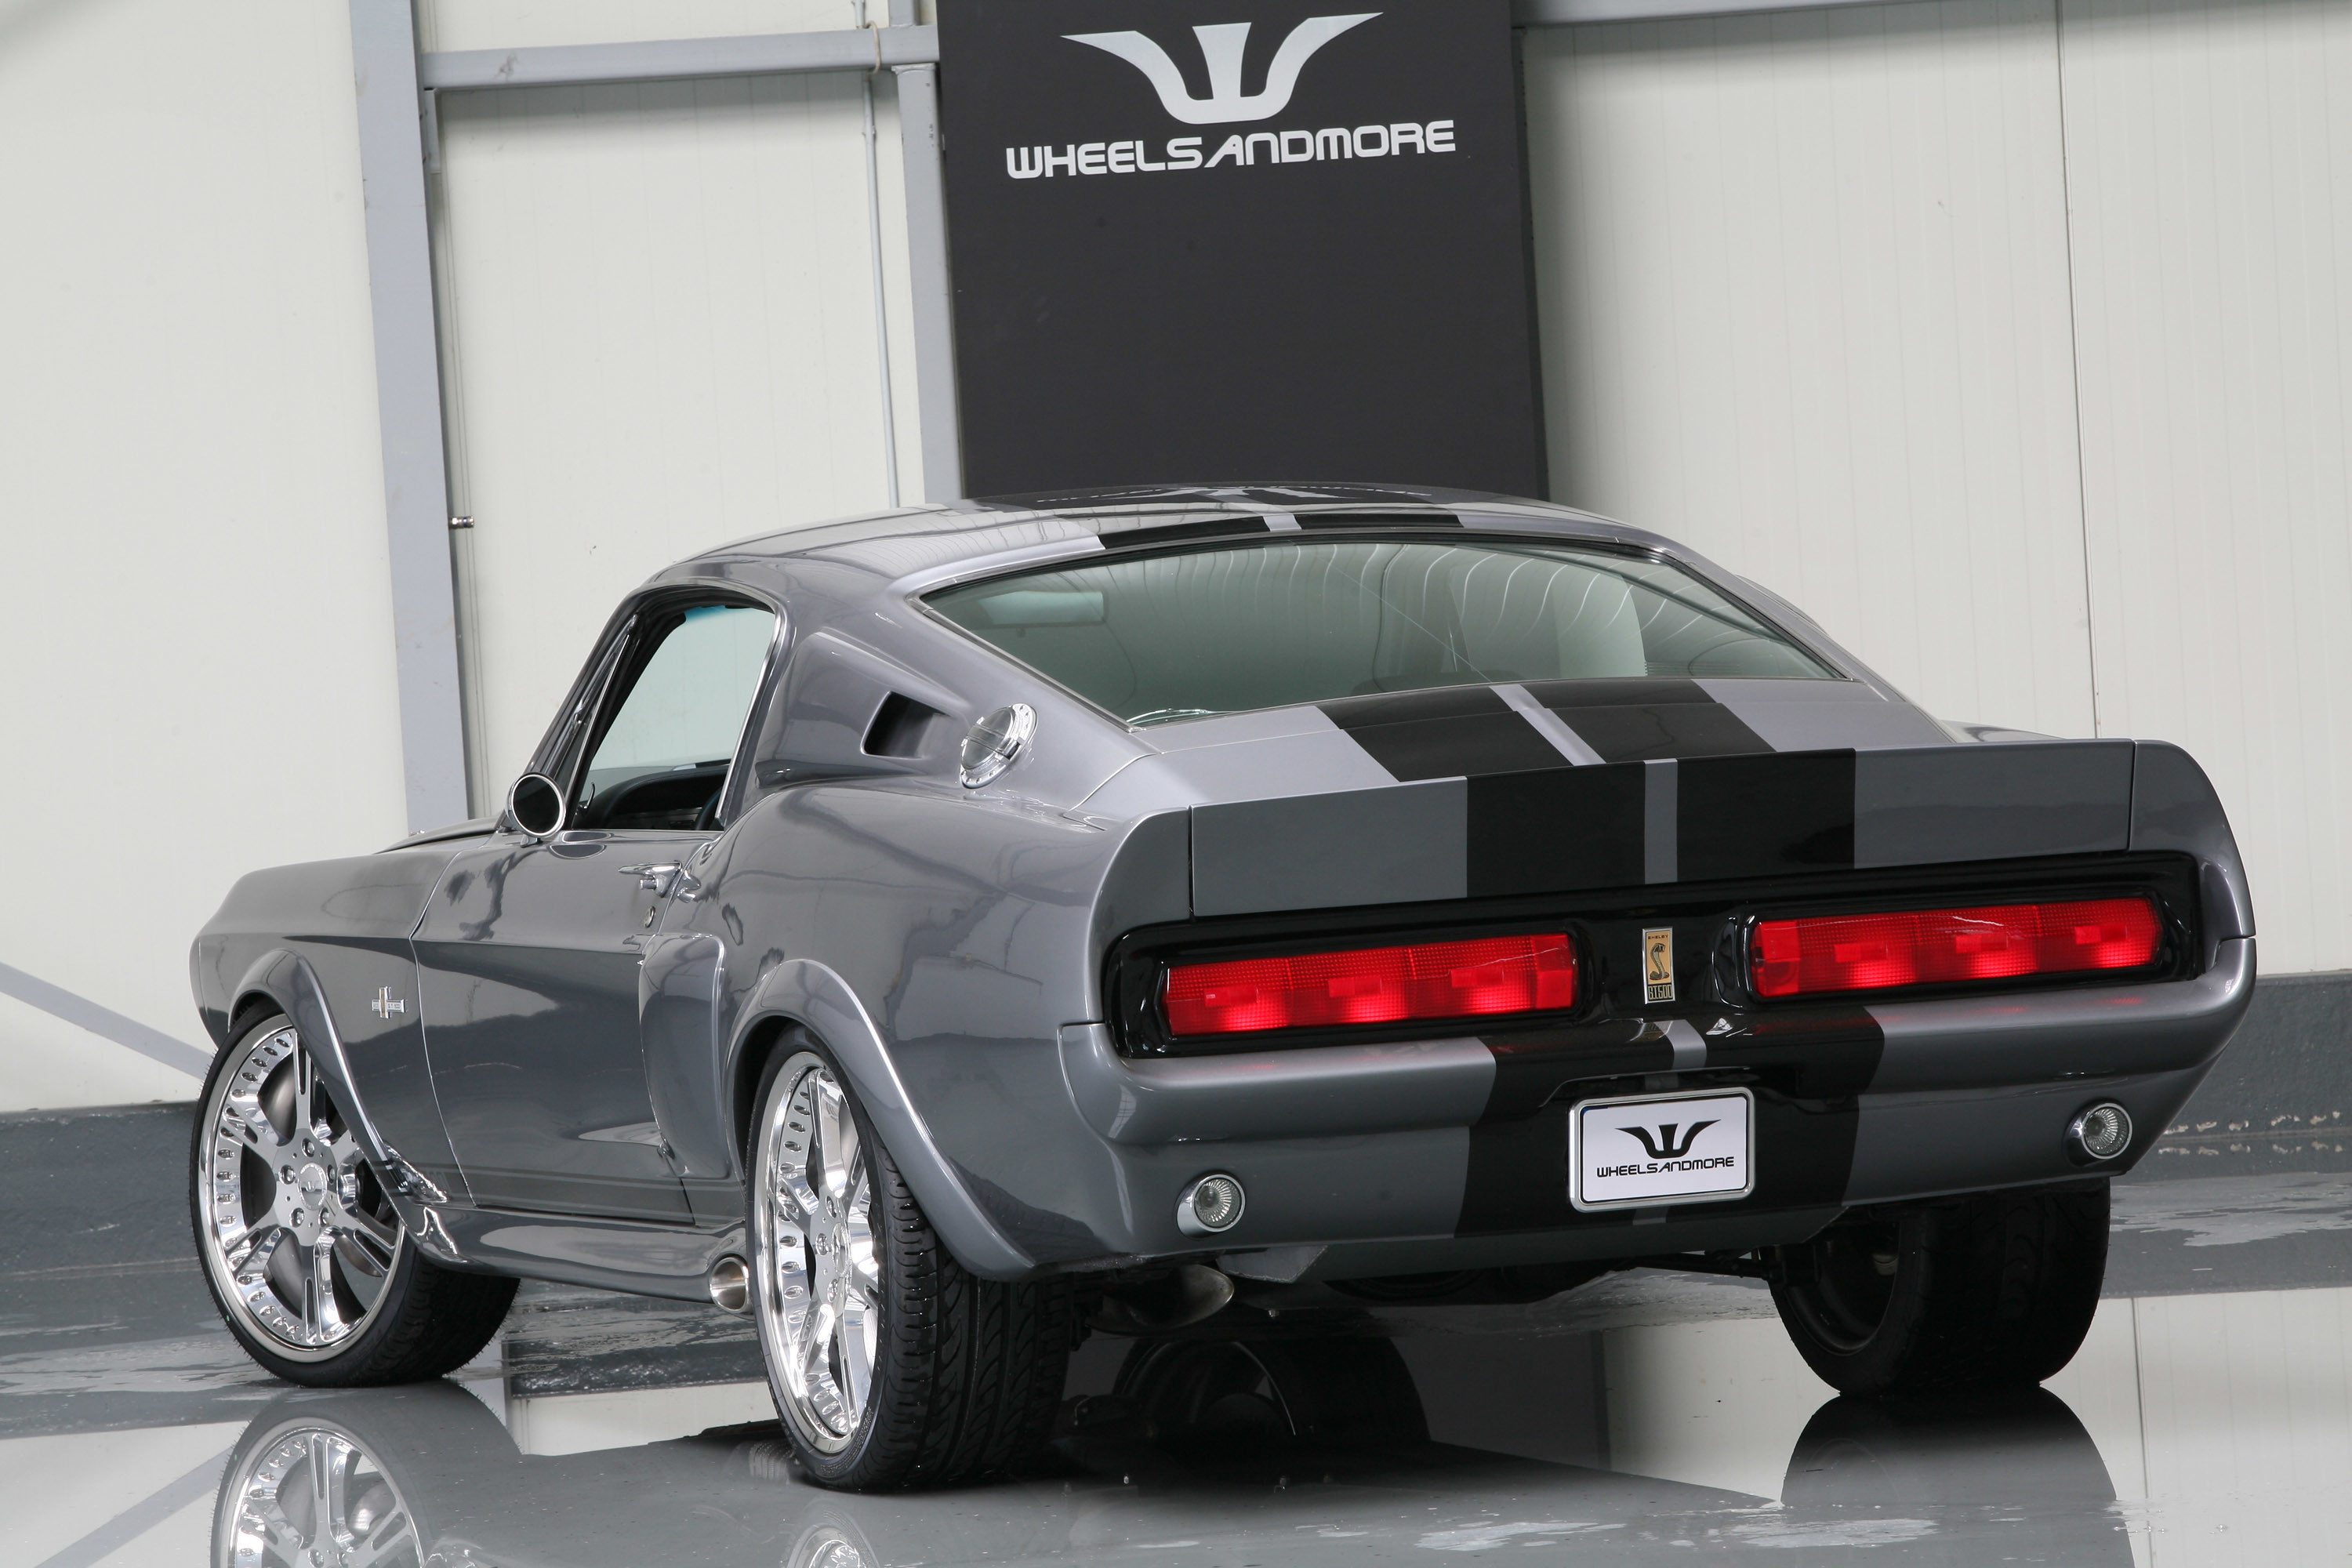 Wheelsandmore Mustang Shelby GT500 – ELEANOR wallpaper | | 165754  | WallpaperUP